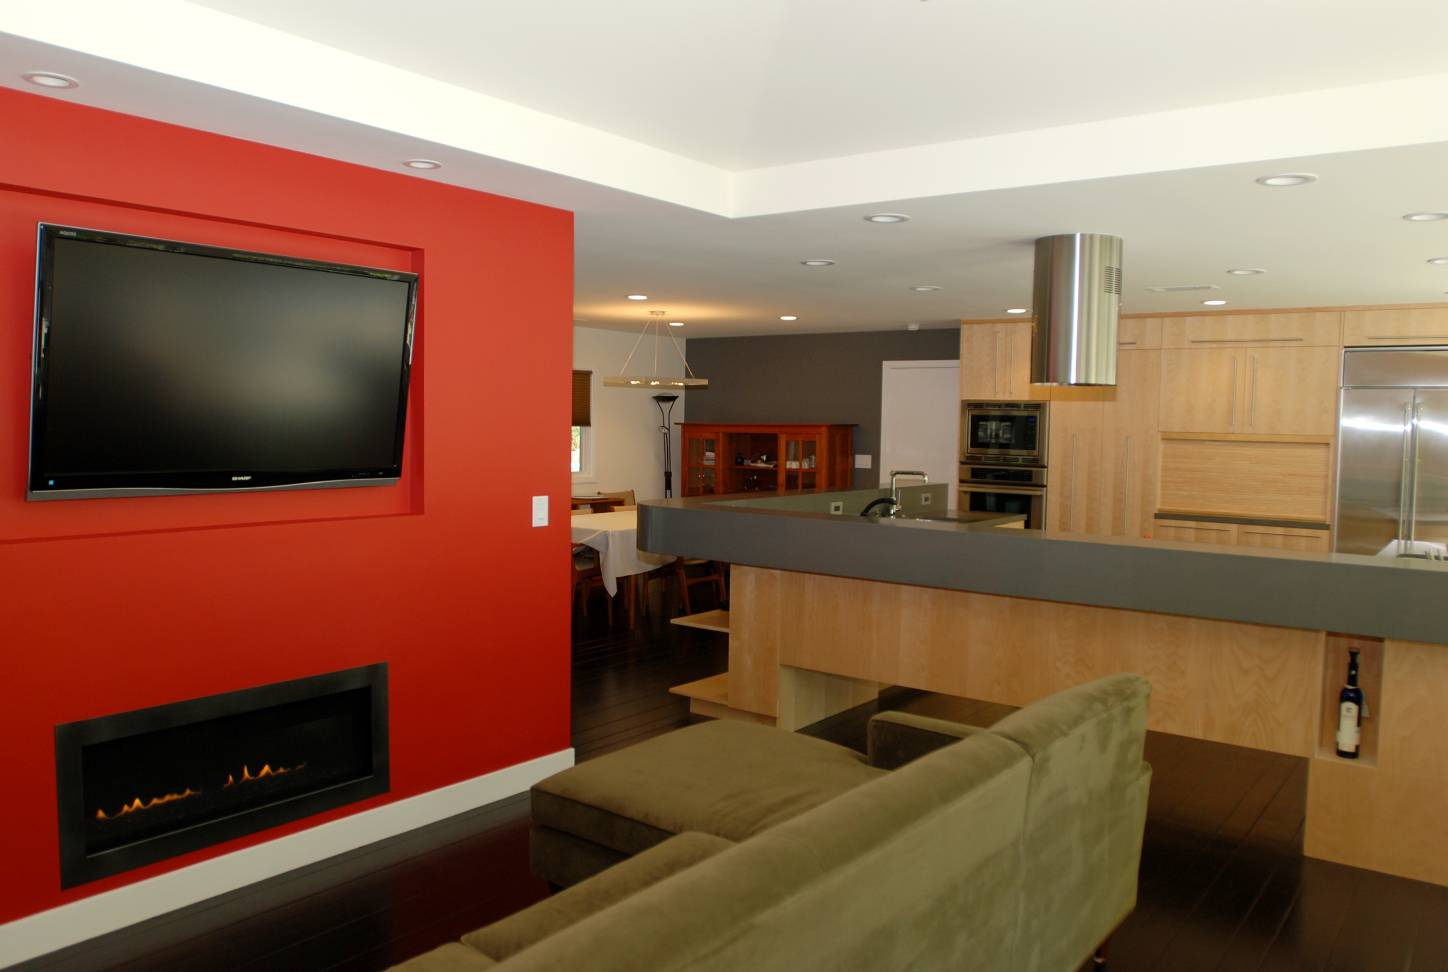 Living room with fireplace red wall and kitchen view, Splendid Architect design, interior design work, Menlo Park